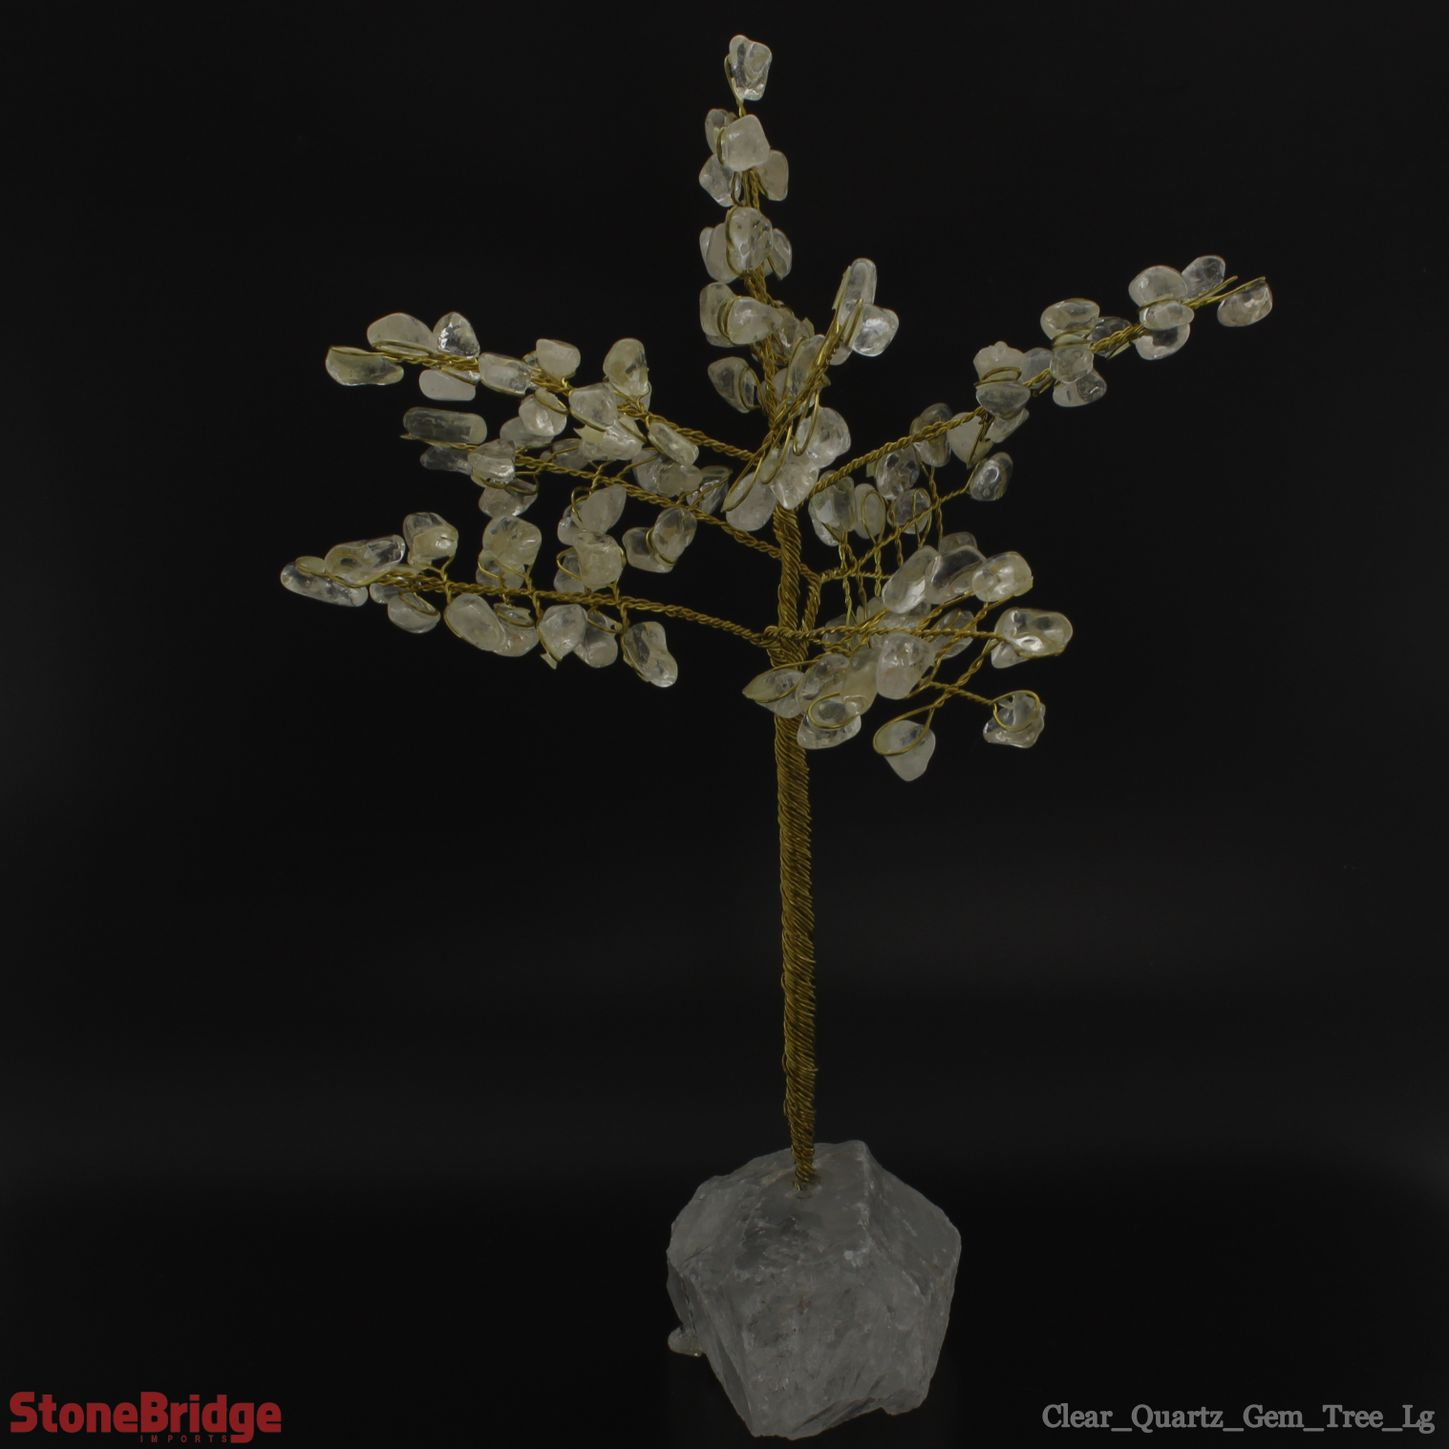 TRTSWILcr_Clear_Quartz_Gem_Tree_Lg_1.jpg